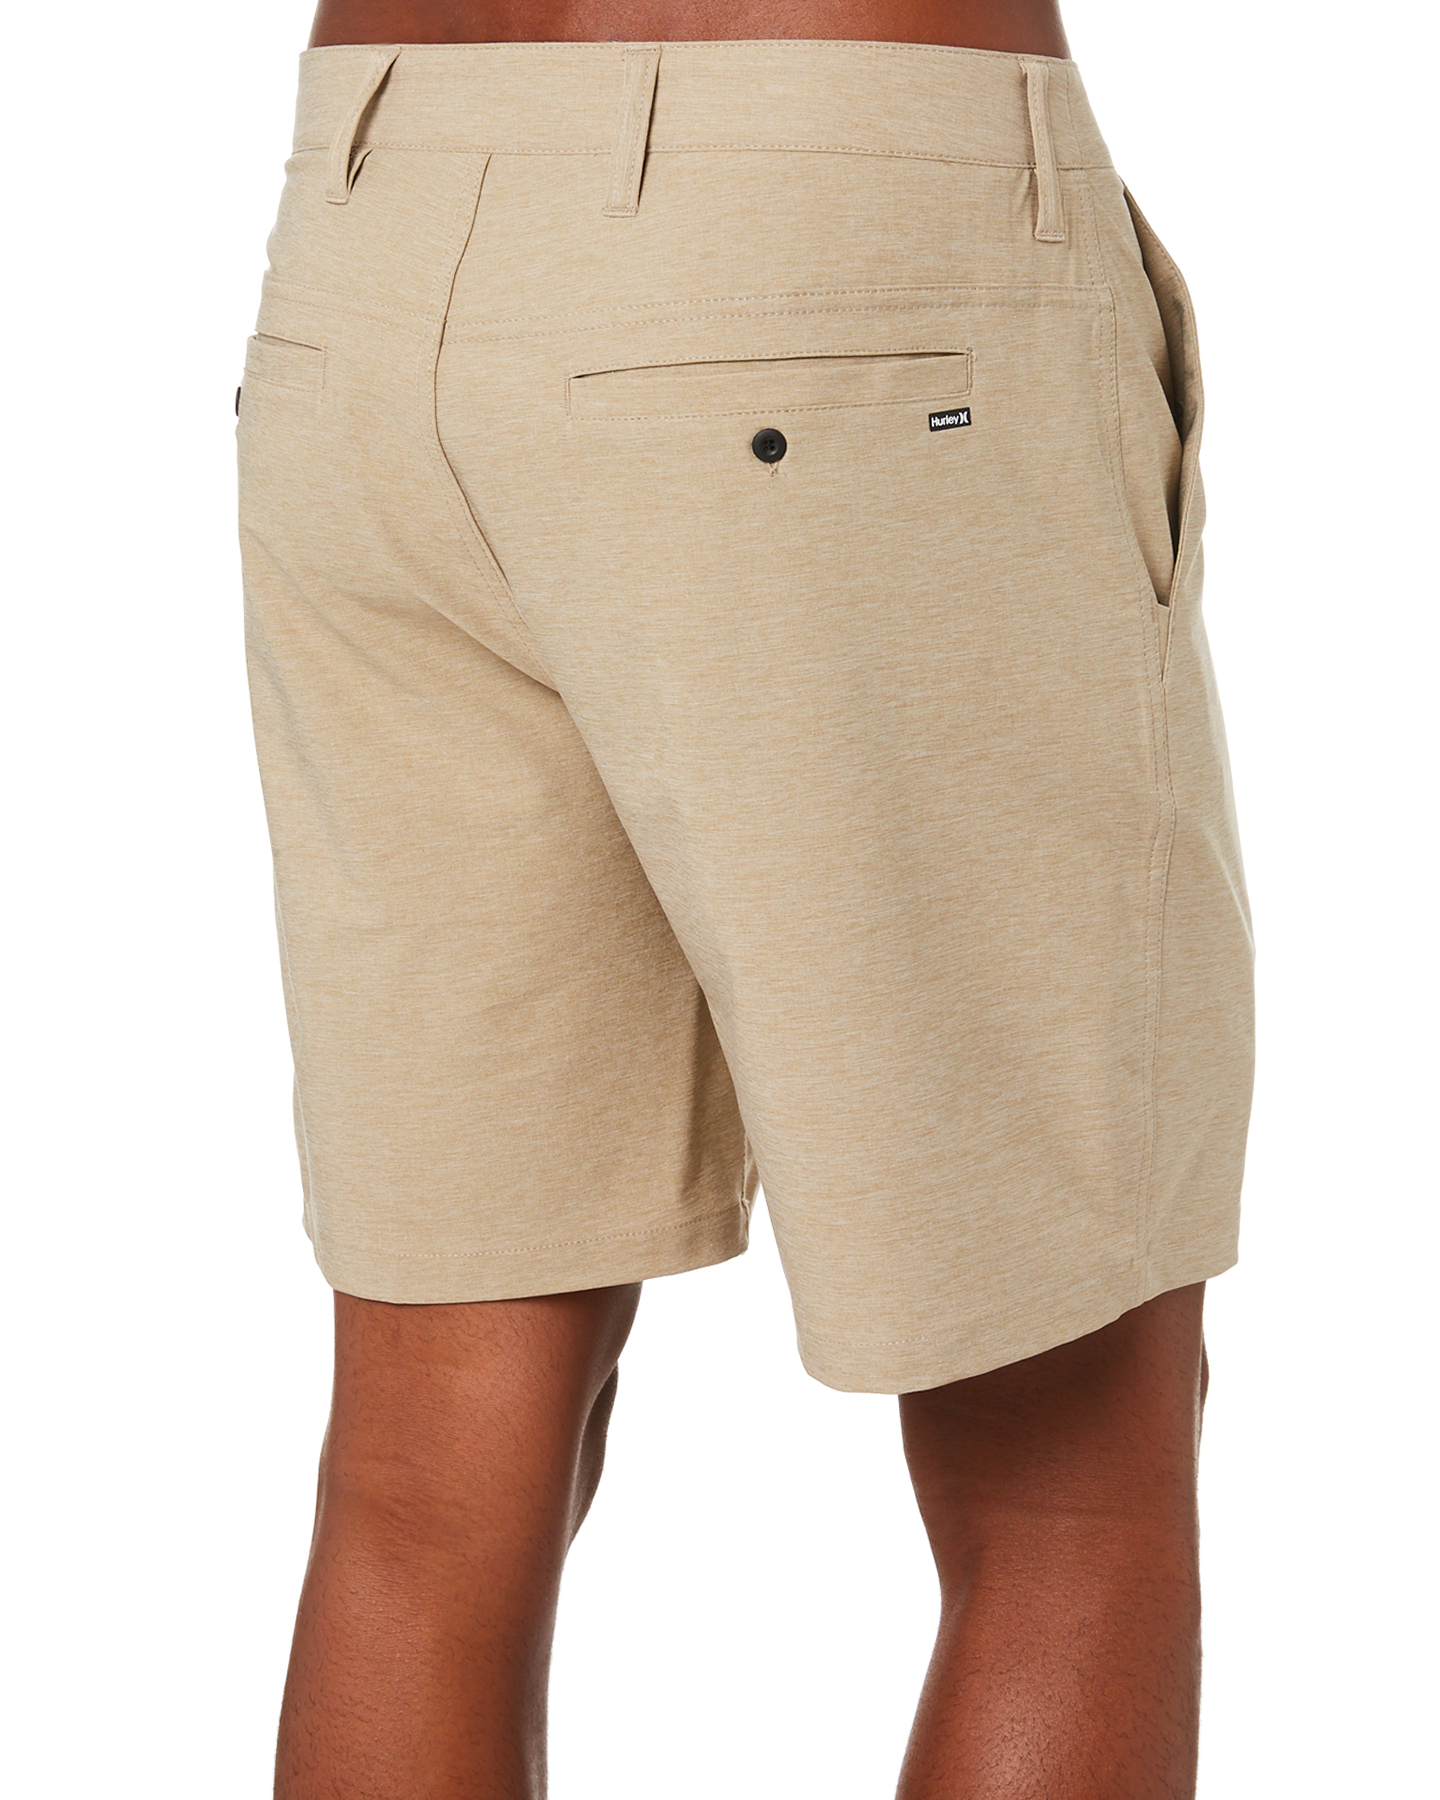 New-Hurley-Men-039-s-Dri-Fit-Chino-Short-21In-Mens-Short-Fitted-Spandex-Grey thumbnail 14